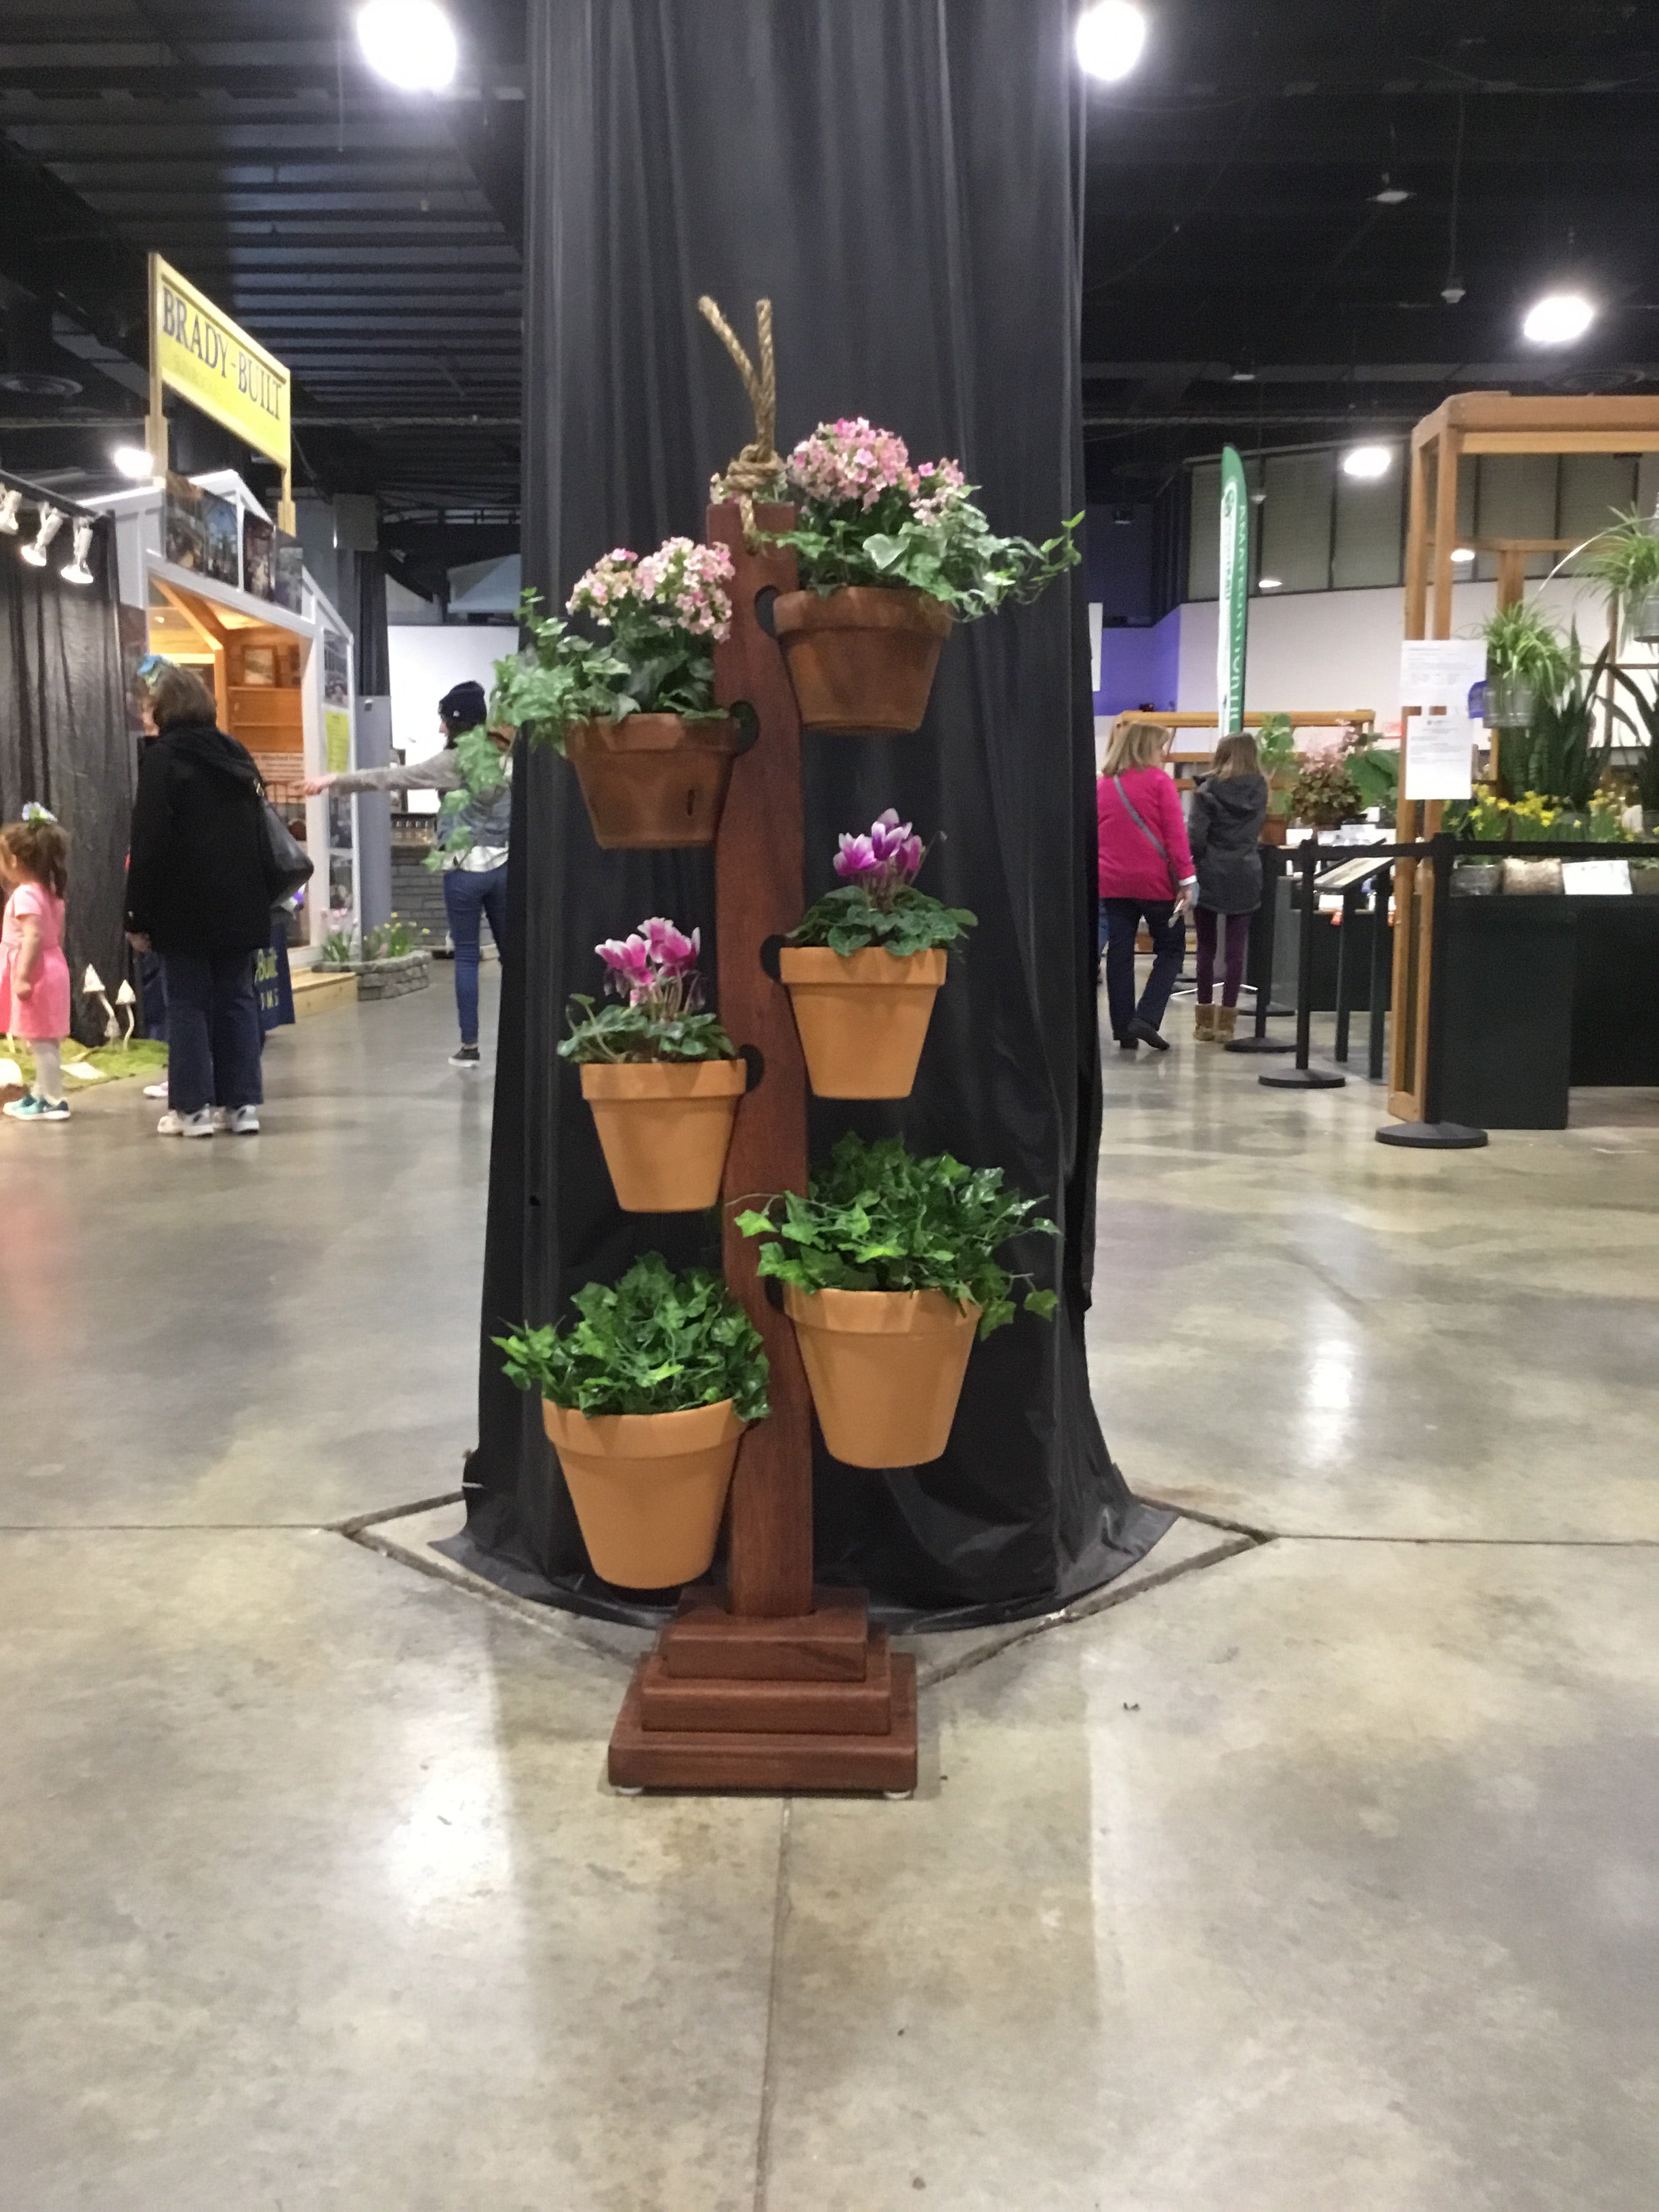 6 Pot Mahogany Tower at the Boston Flower Show